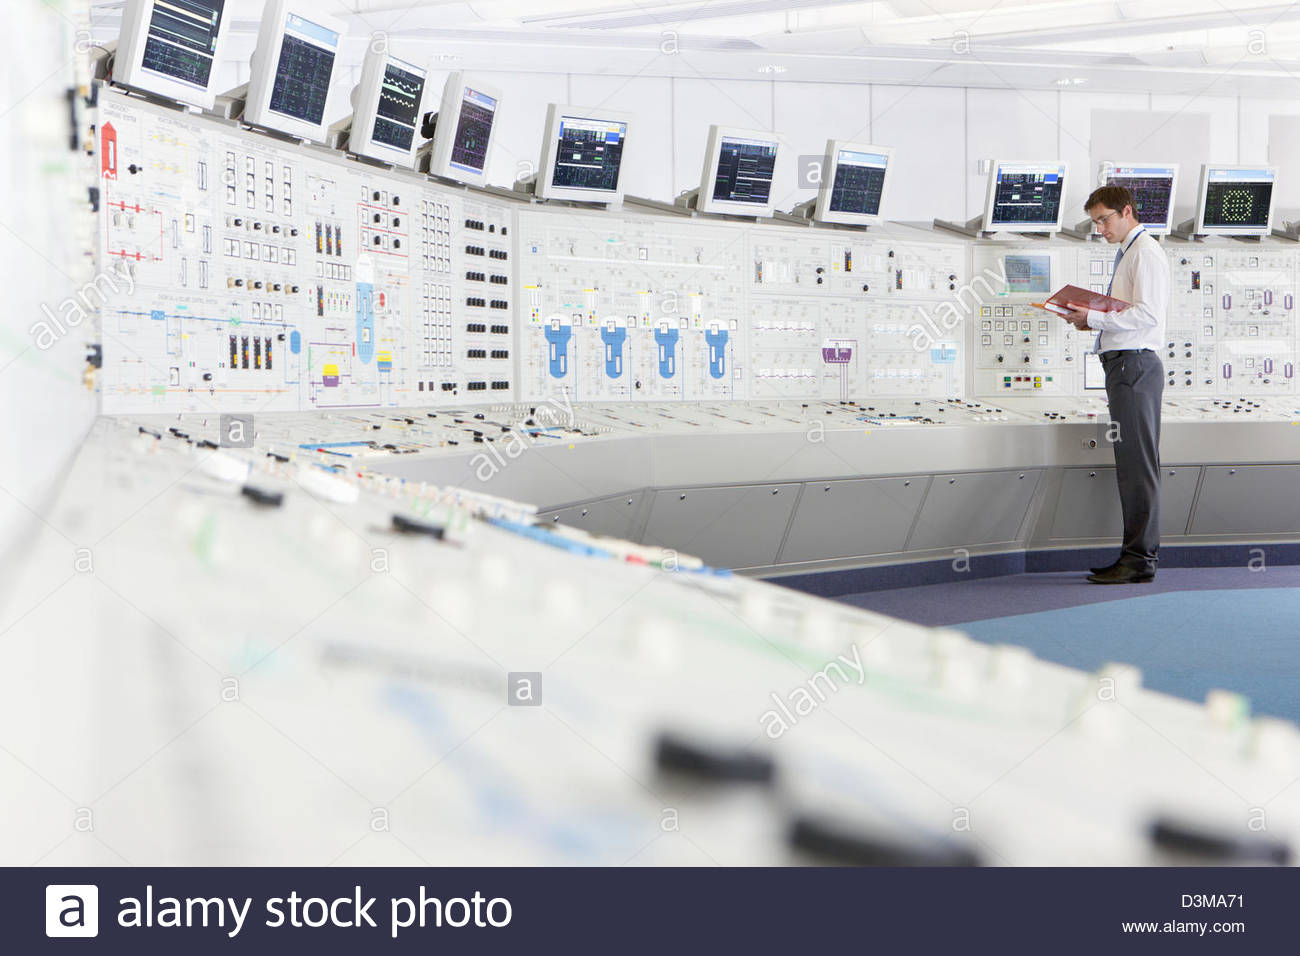 Engineer with binder at control panel in control room of nuclear power station Stock Photo